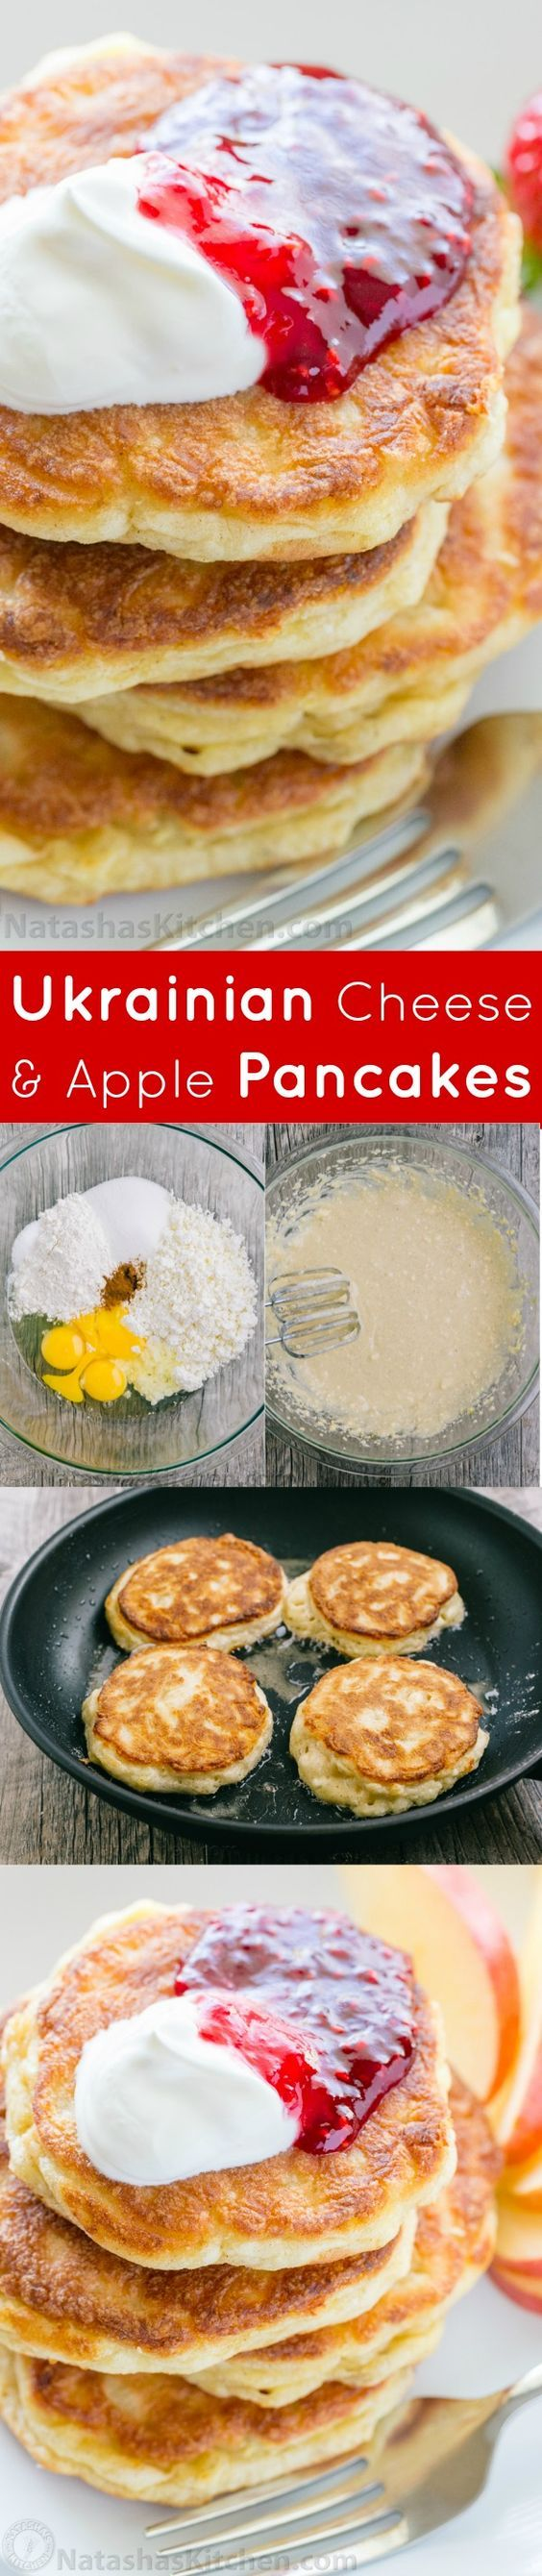 Apple and cheese pancakes are so light and fluffy. Serve these Ukrainian cheese pancakes with jam and sour cream for an unforgettable breakfast!: